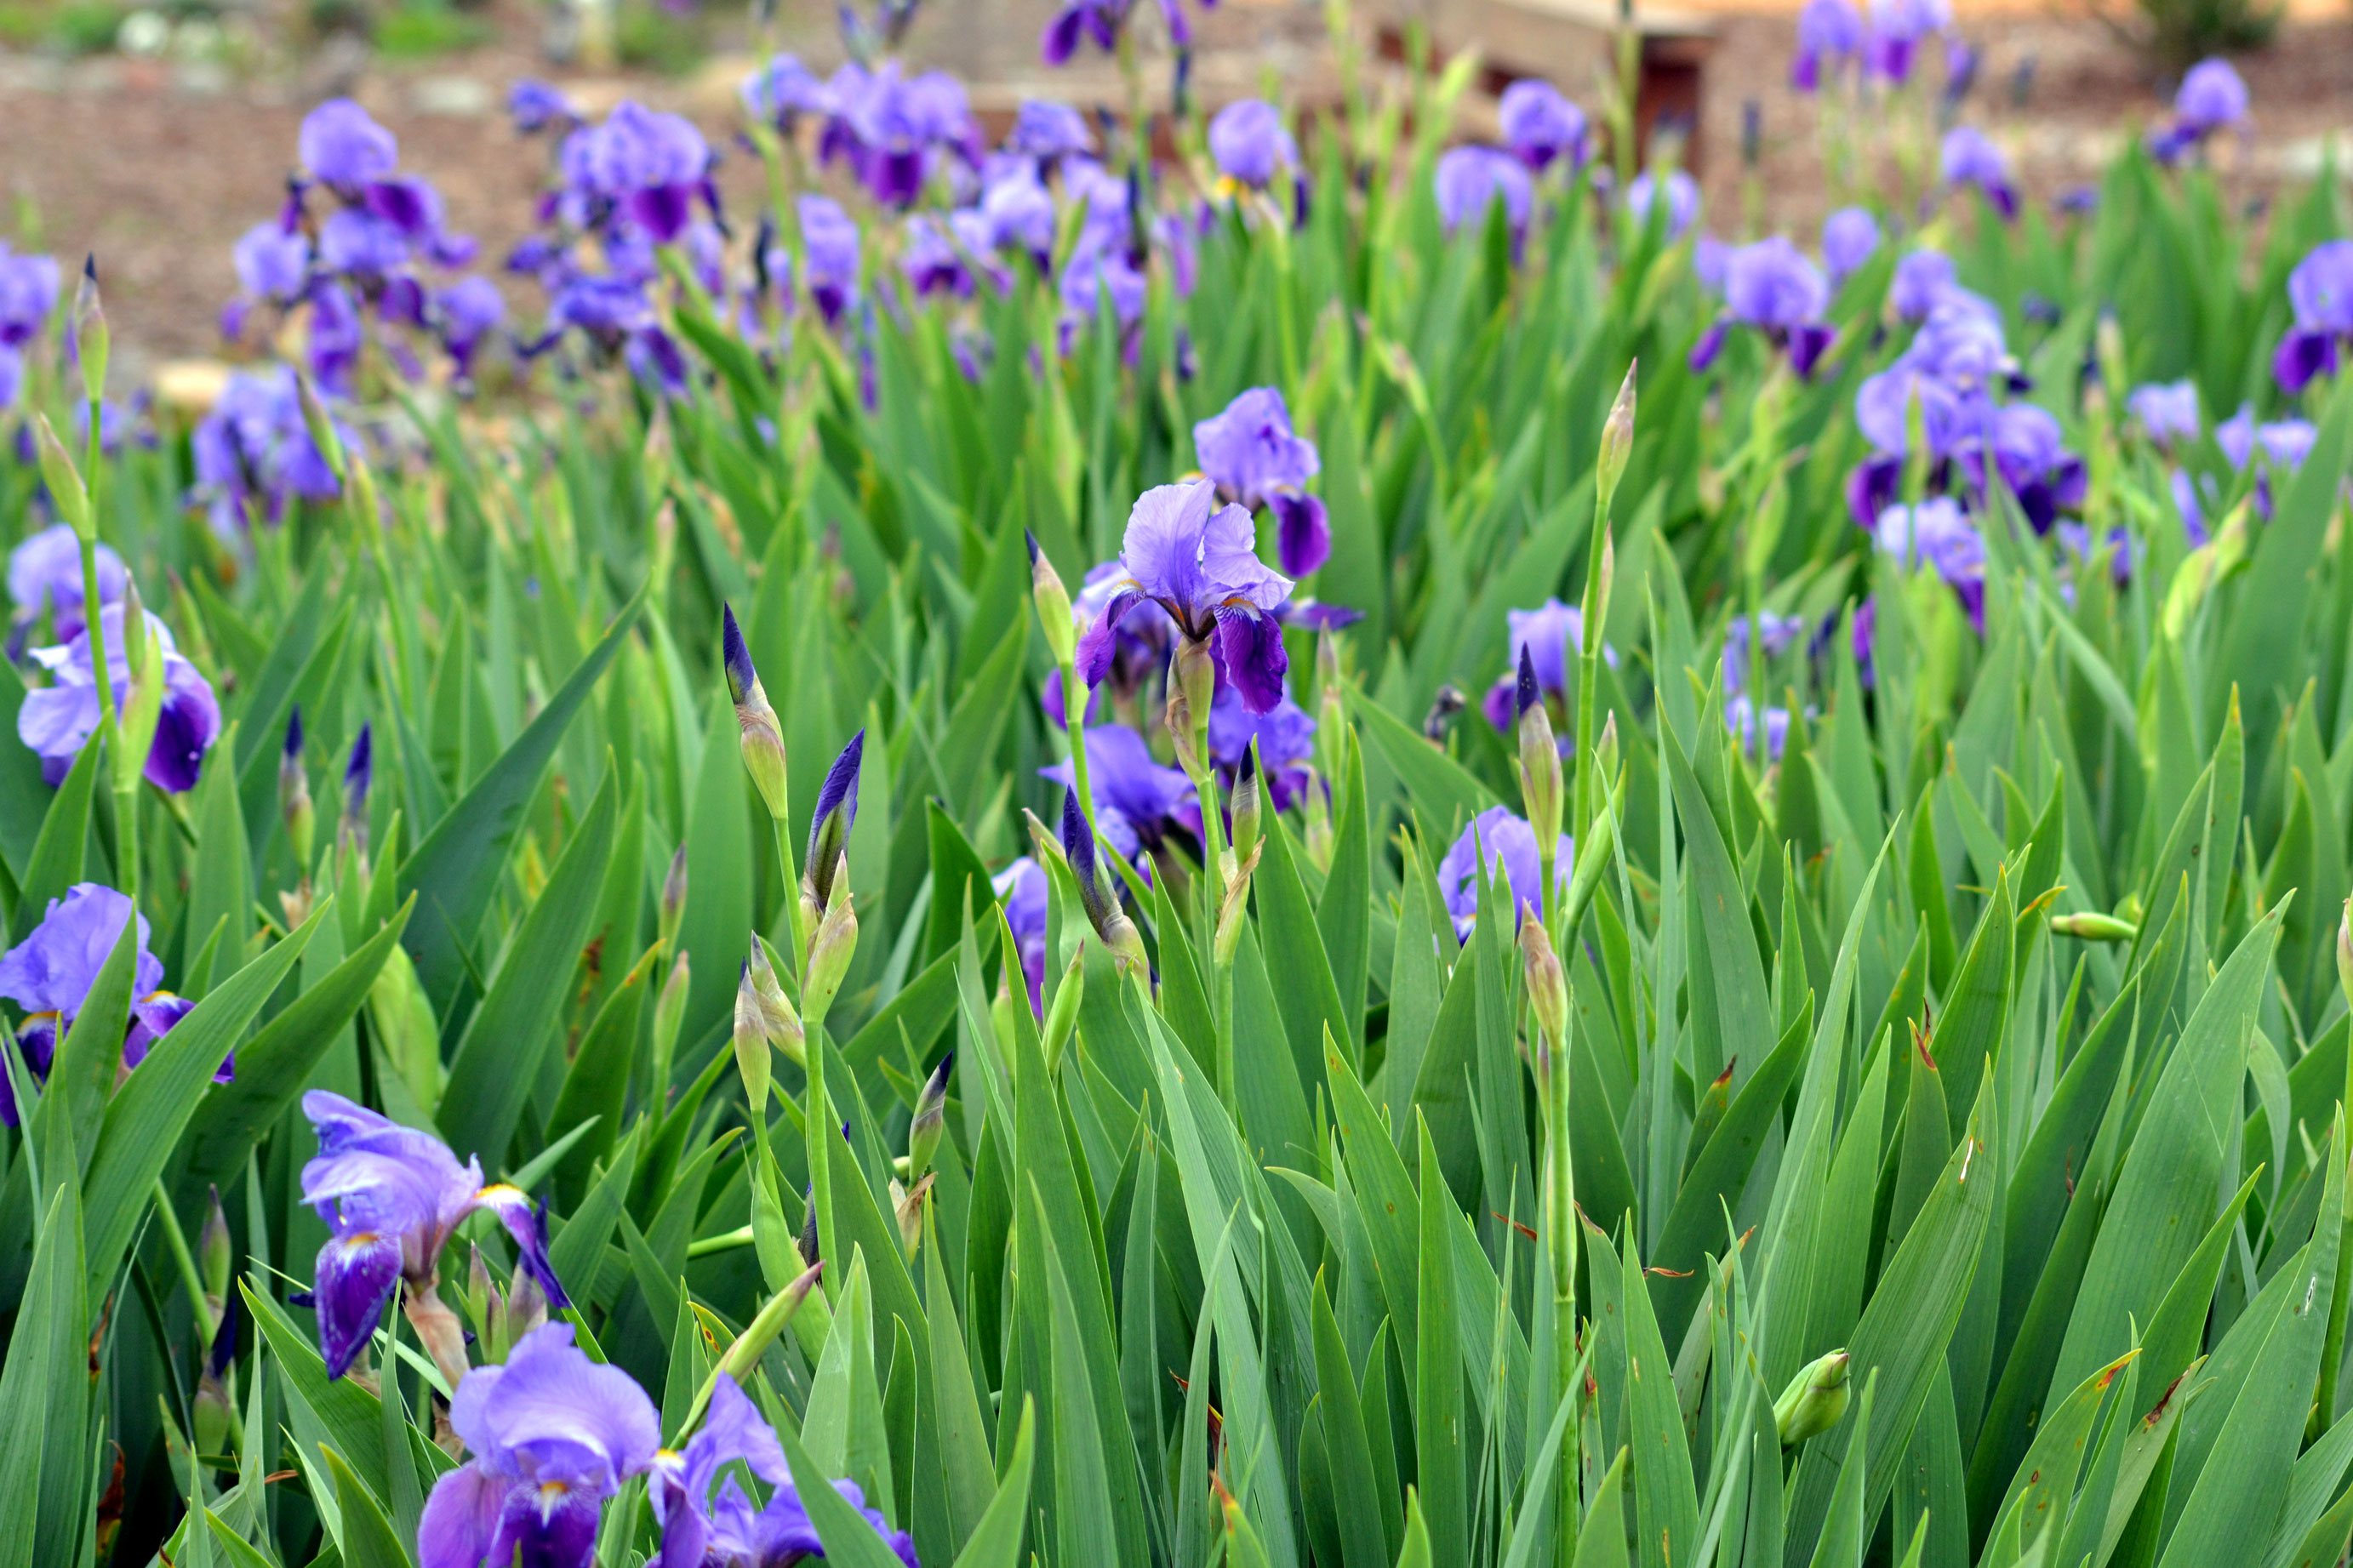 The language of flowers: Iris | Gardens For Goldens: https://gardensforgoldens.com/2013/04/20/the-language-of-flowers-iris/